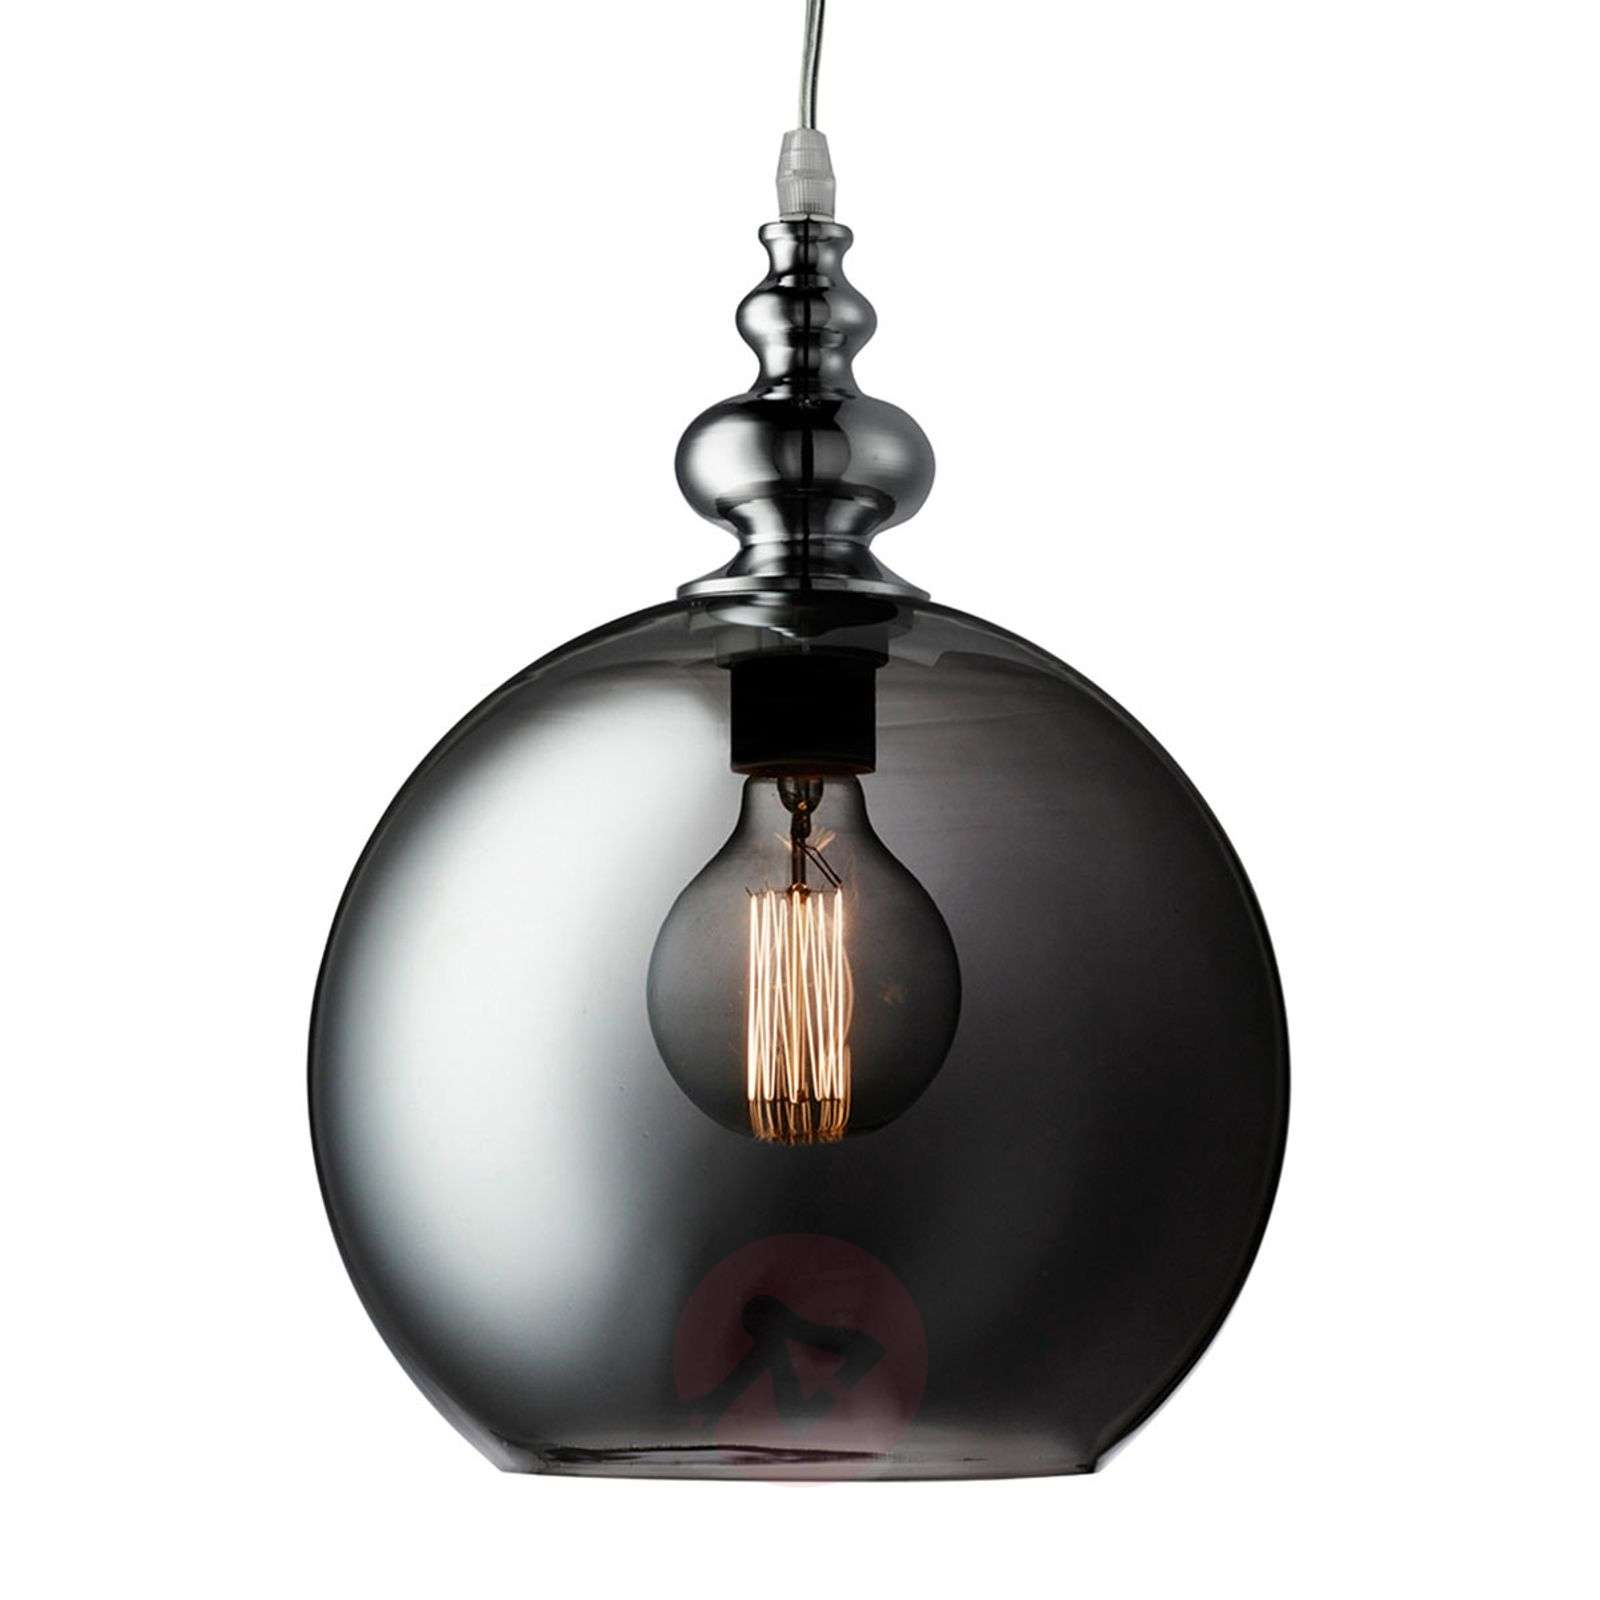 Indiana smoked glass pendant light-8570986-01